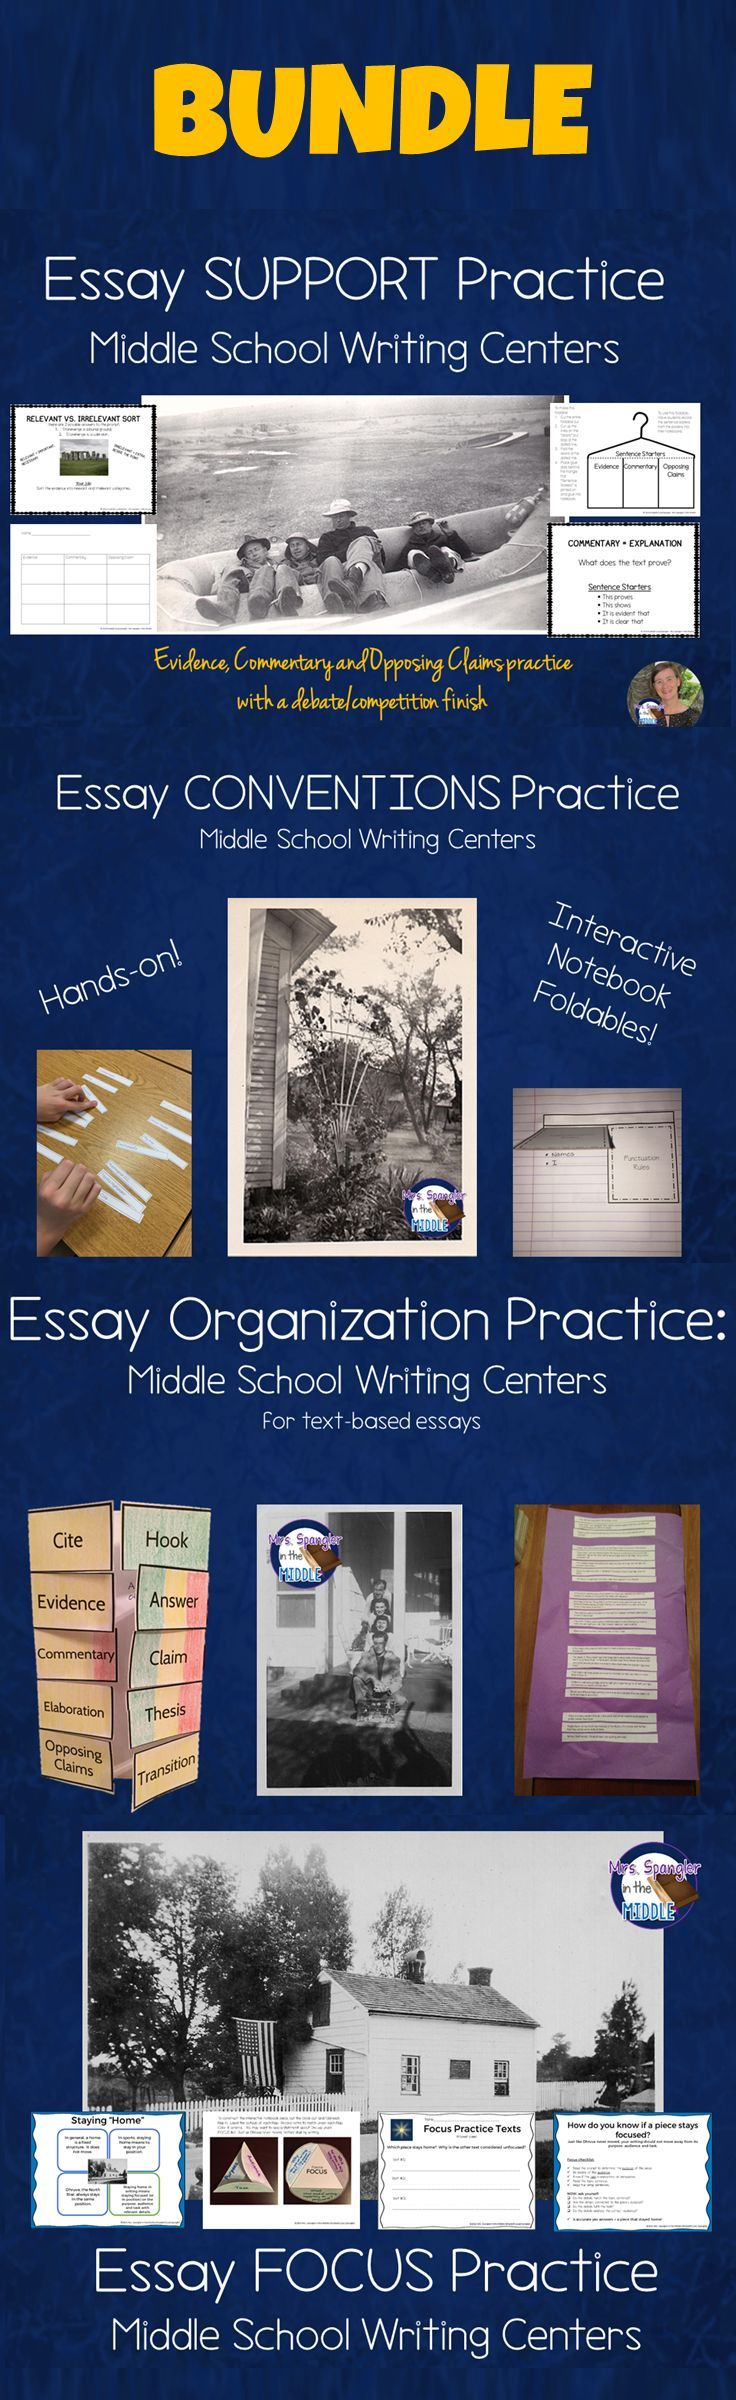 Essay writing resources